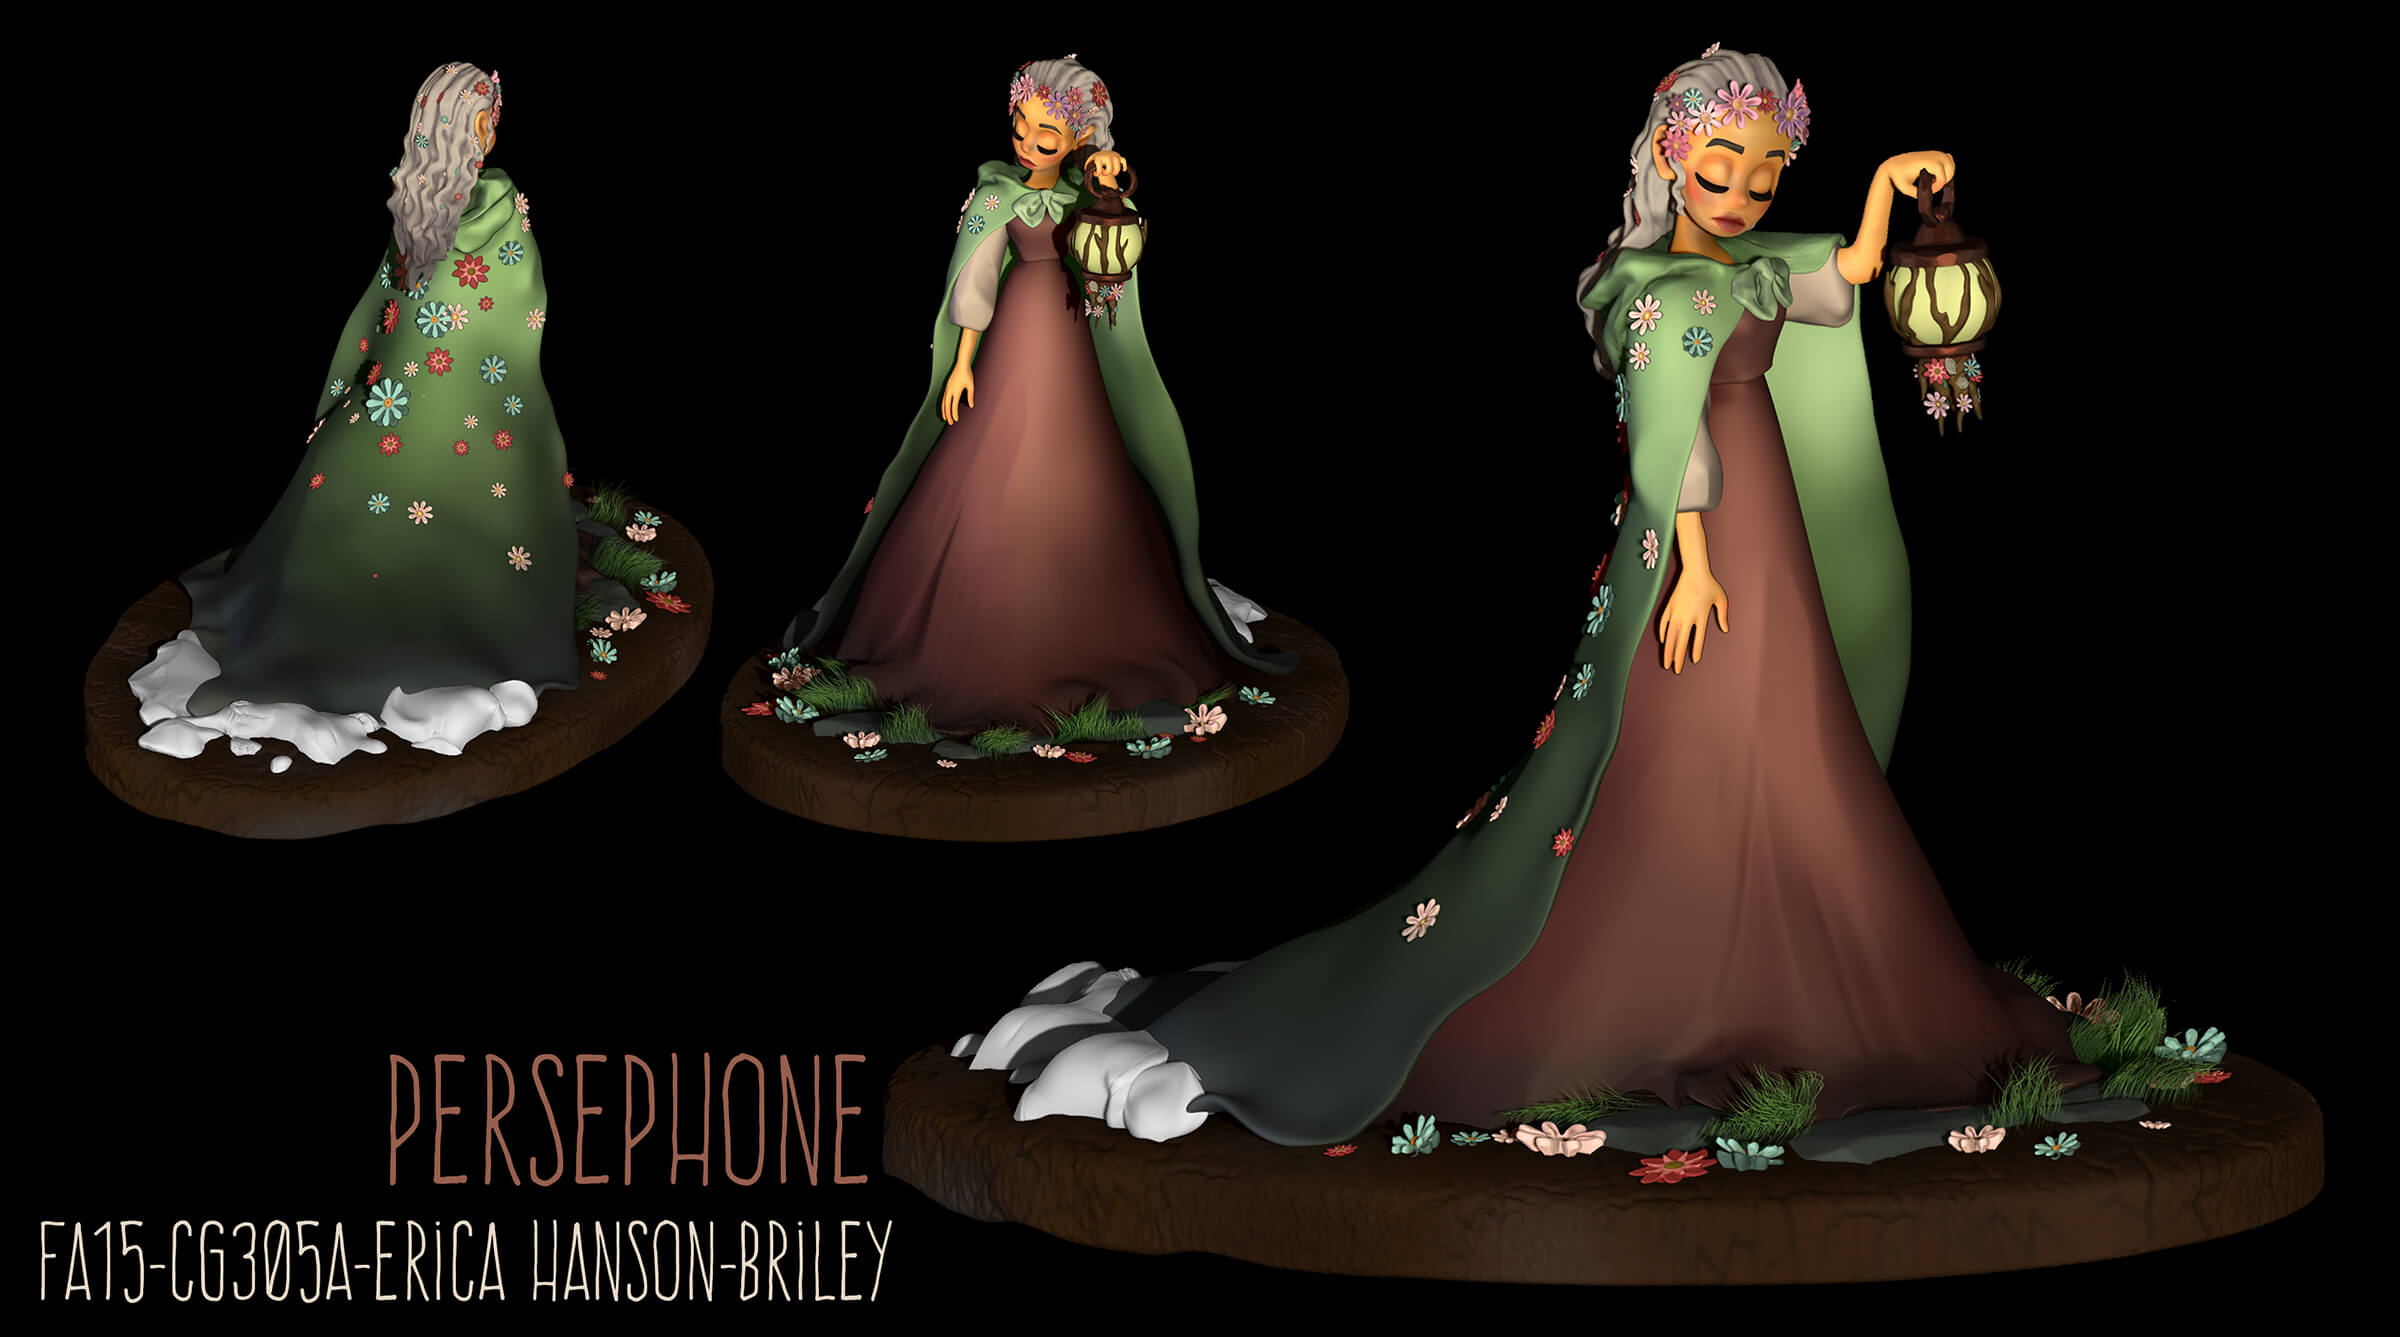 computer-generated 3D model of a female character in a long dress and cape adorned with flowers, holding a lantern